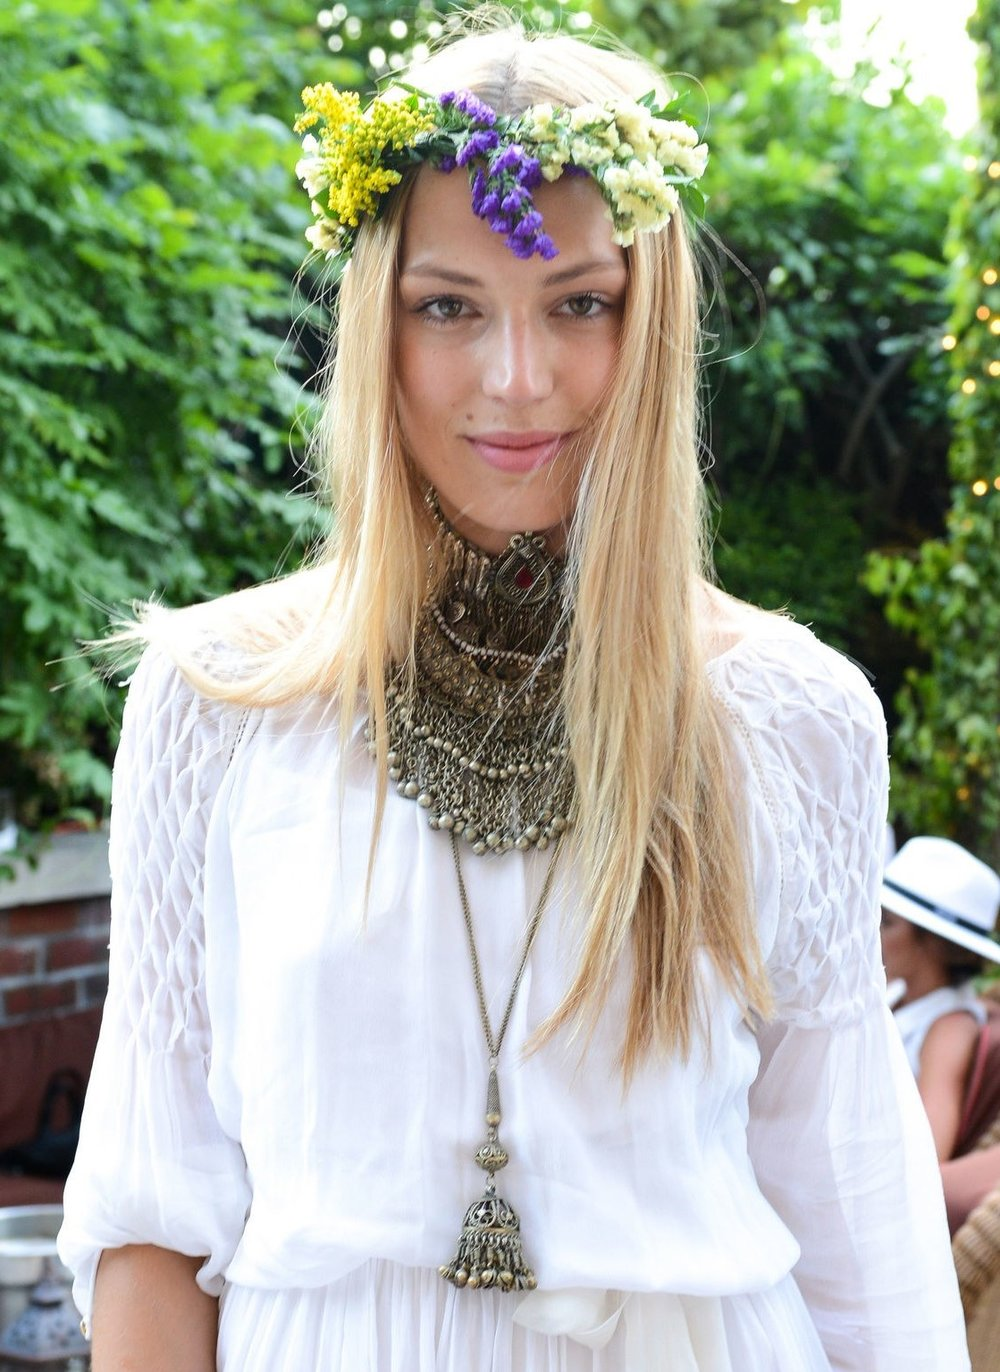 flowers-how-to-style-hair-accessories-headbands-hairstyles-ways-to-wear-crown-boho.jpg